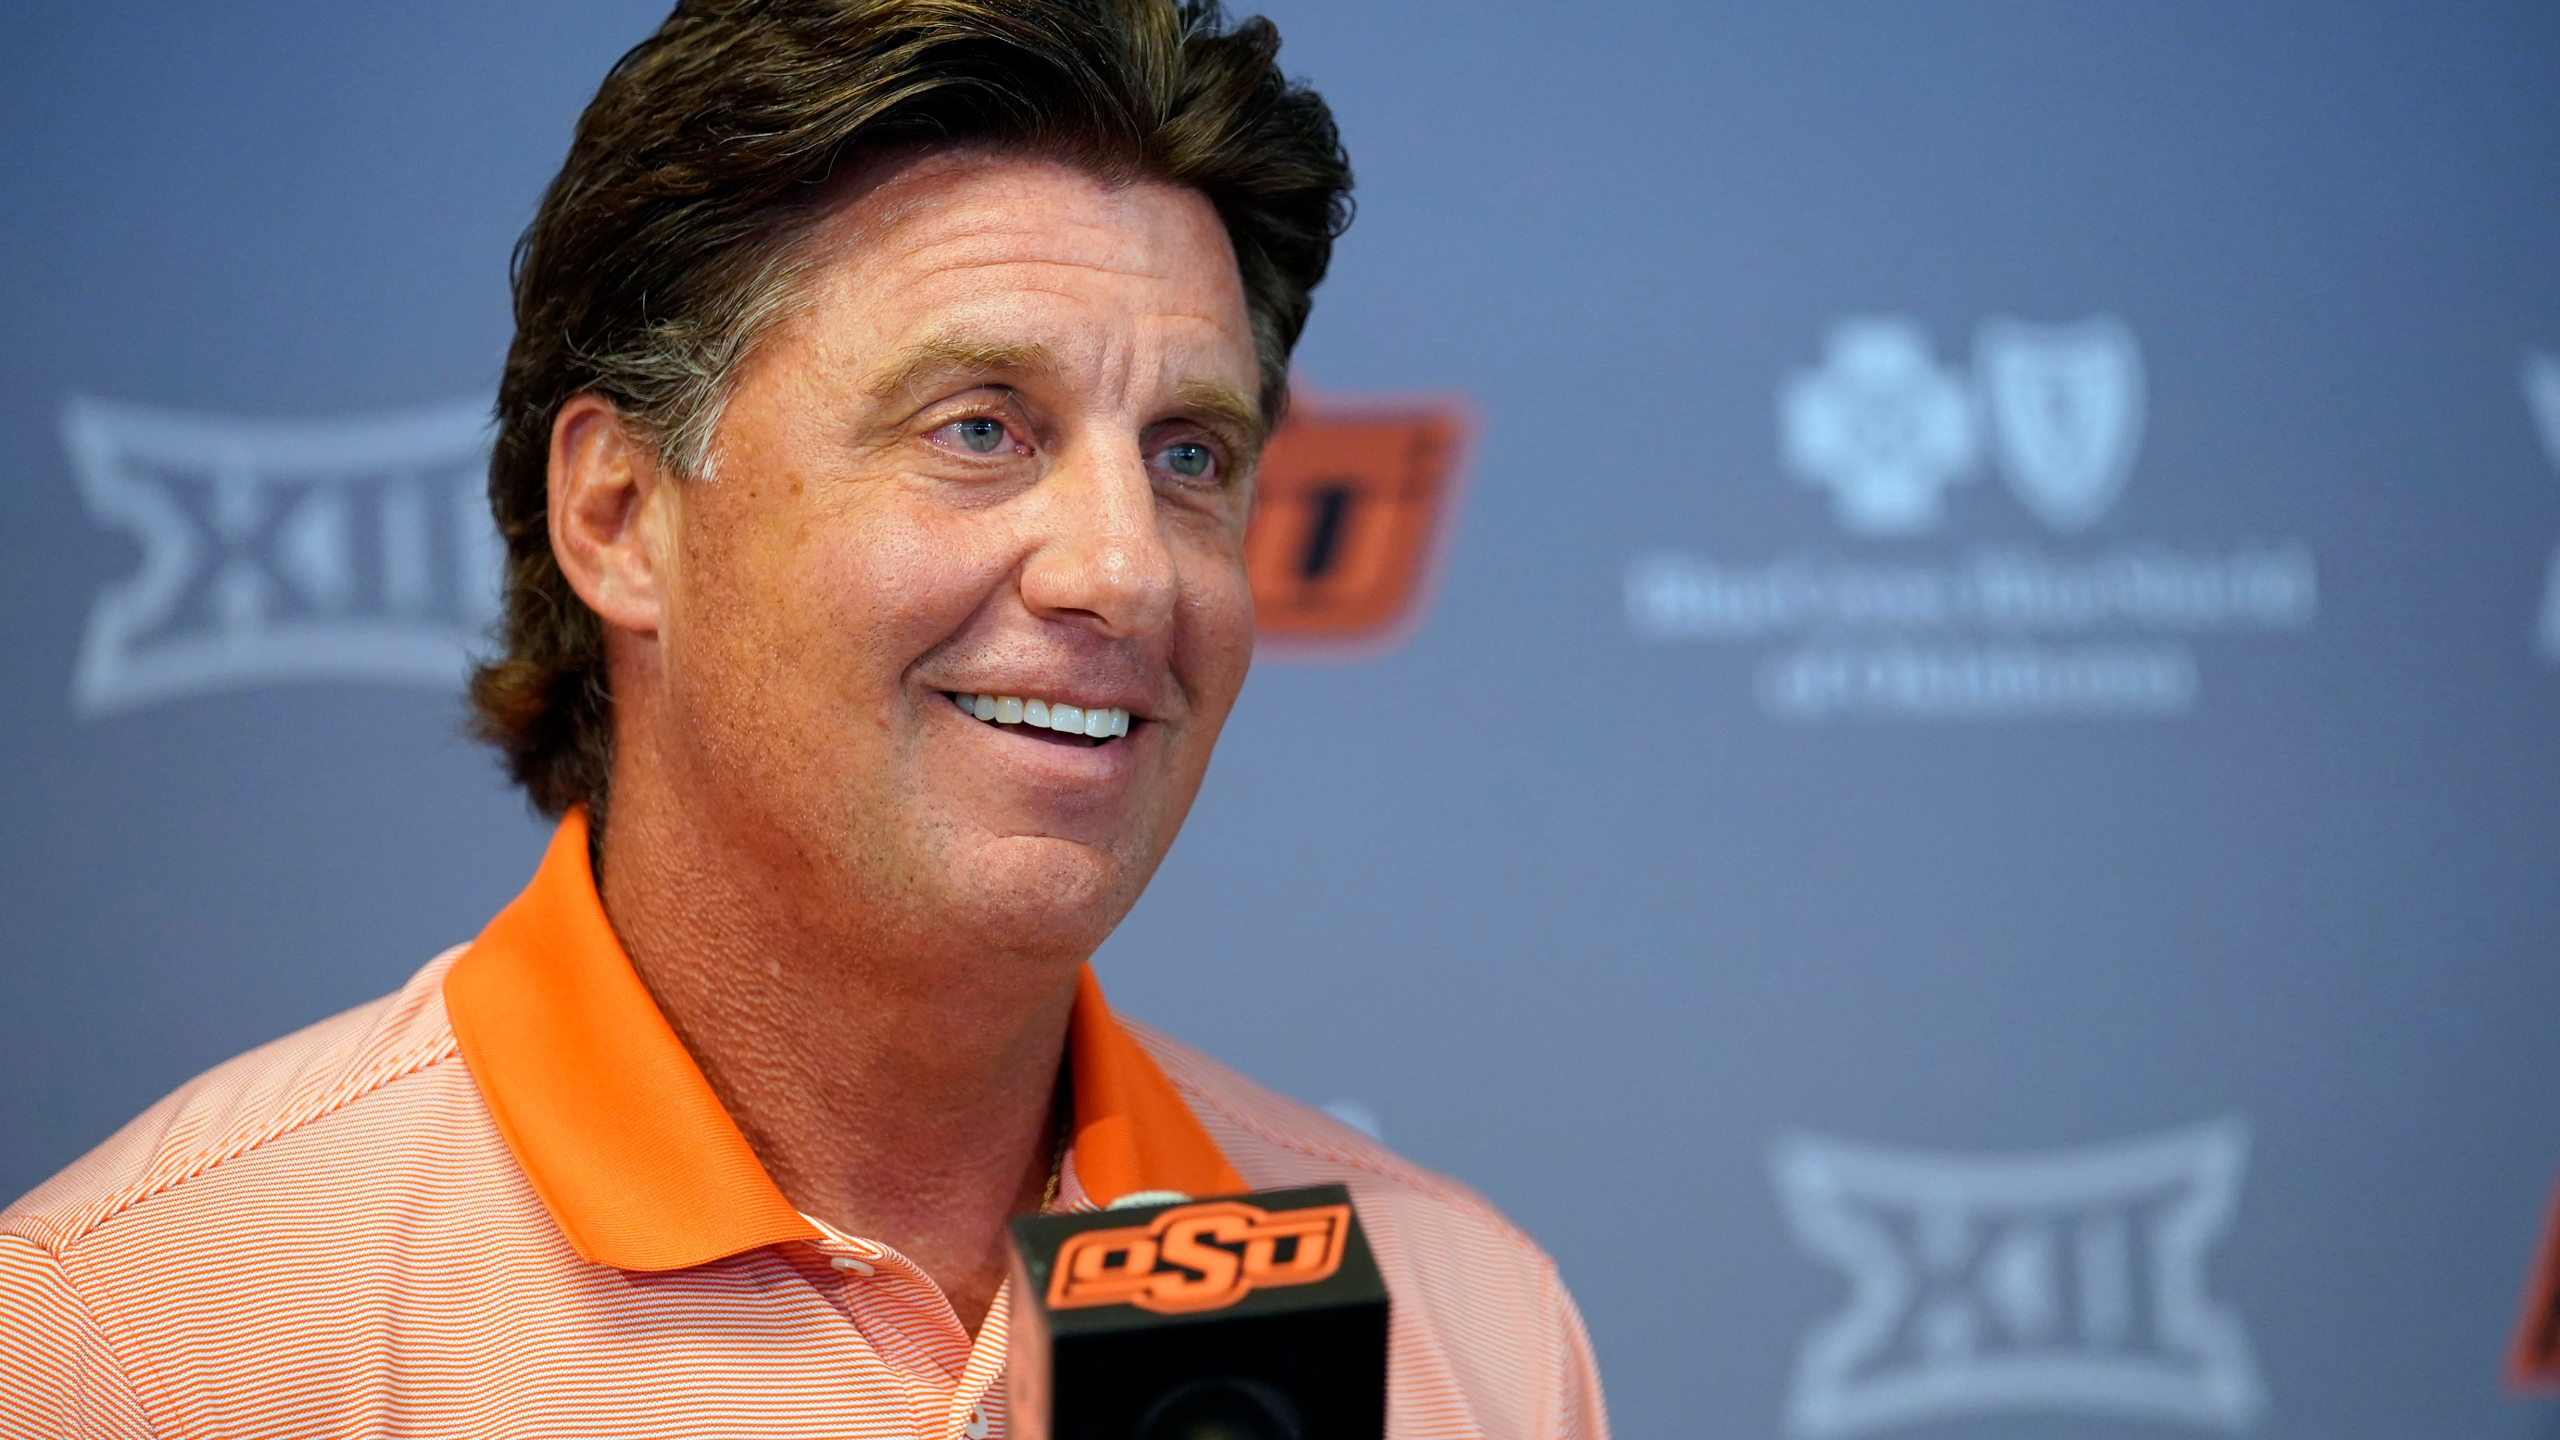 Oklahoma State head coach Mike Gundy answers questions during an NCAA college football news conference Thursday, Aug. 26, 2021, in Stillwater, Okla.